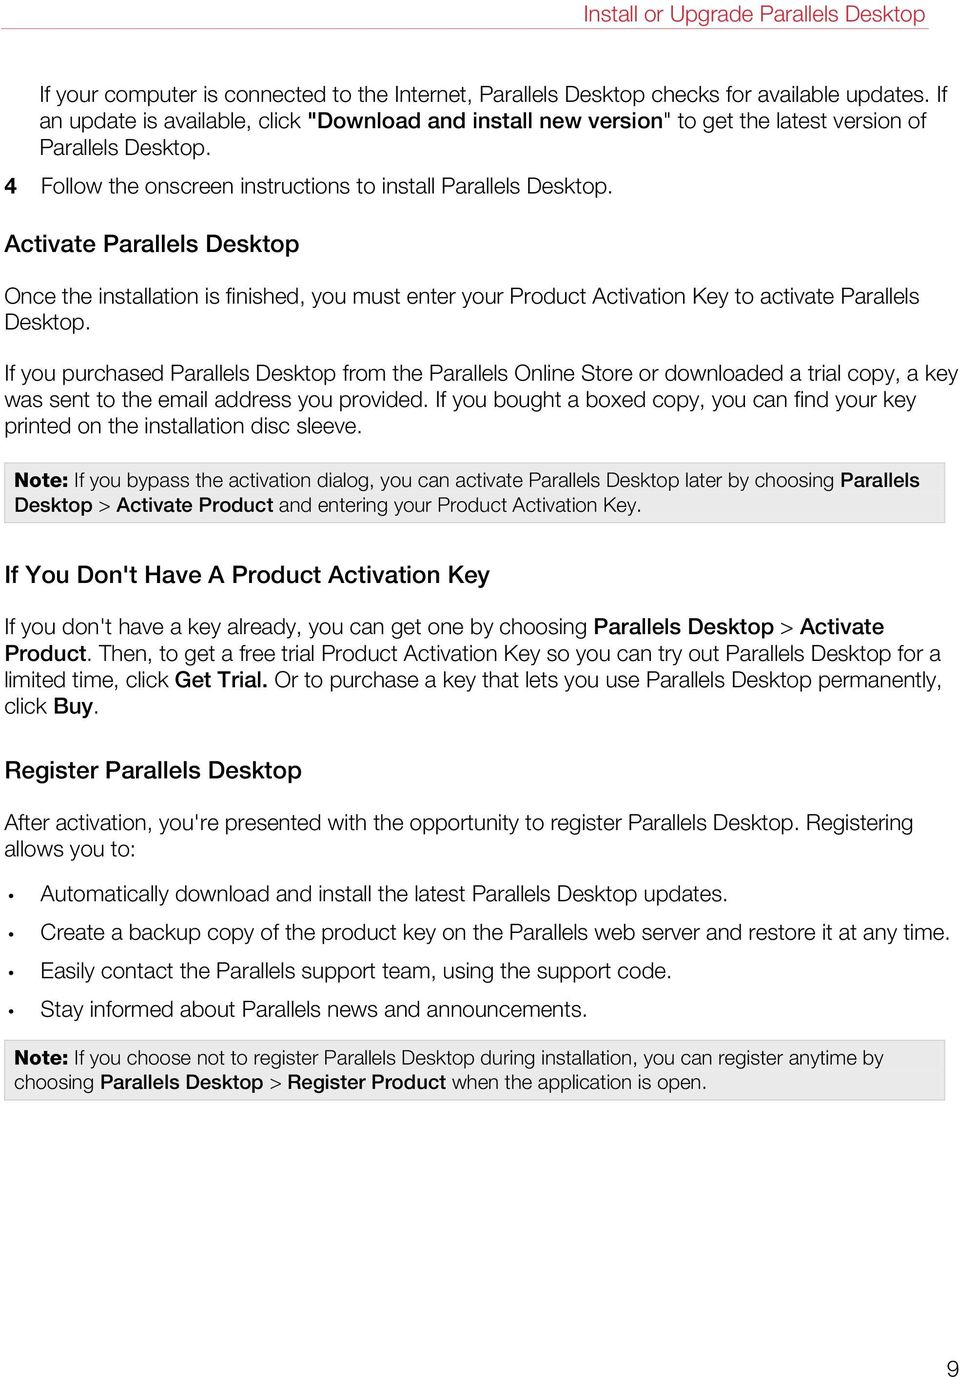 Activate Parallels Desktop Once the installation is finished, you must enter your Product Activation Key to activate Parallels Desktop.